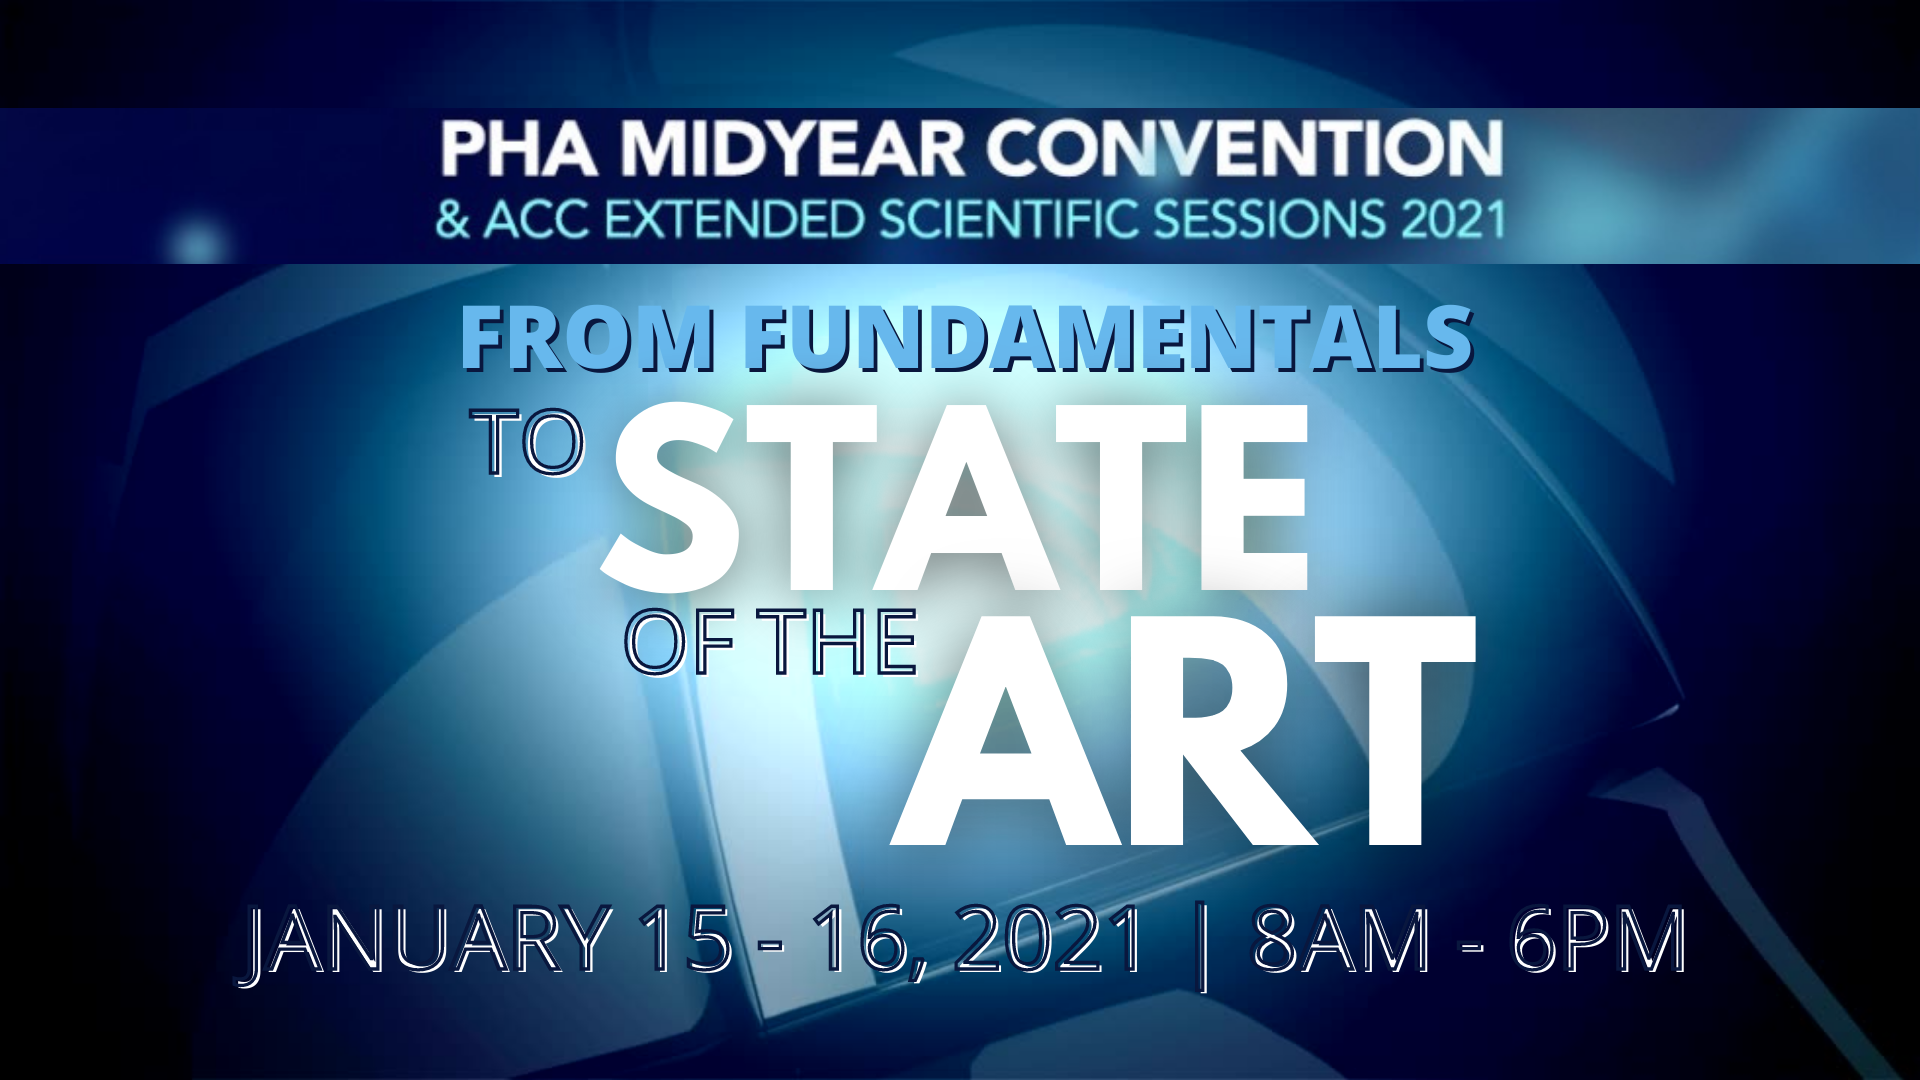 PHA MIDYEAR CONVENTION & ACC EXTENDED SCIENTIFIC SESSIONS 2021